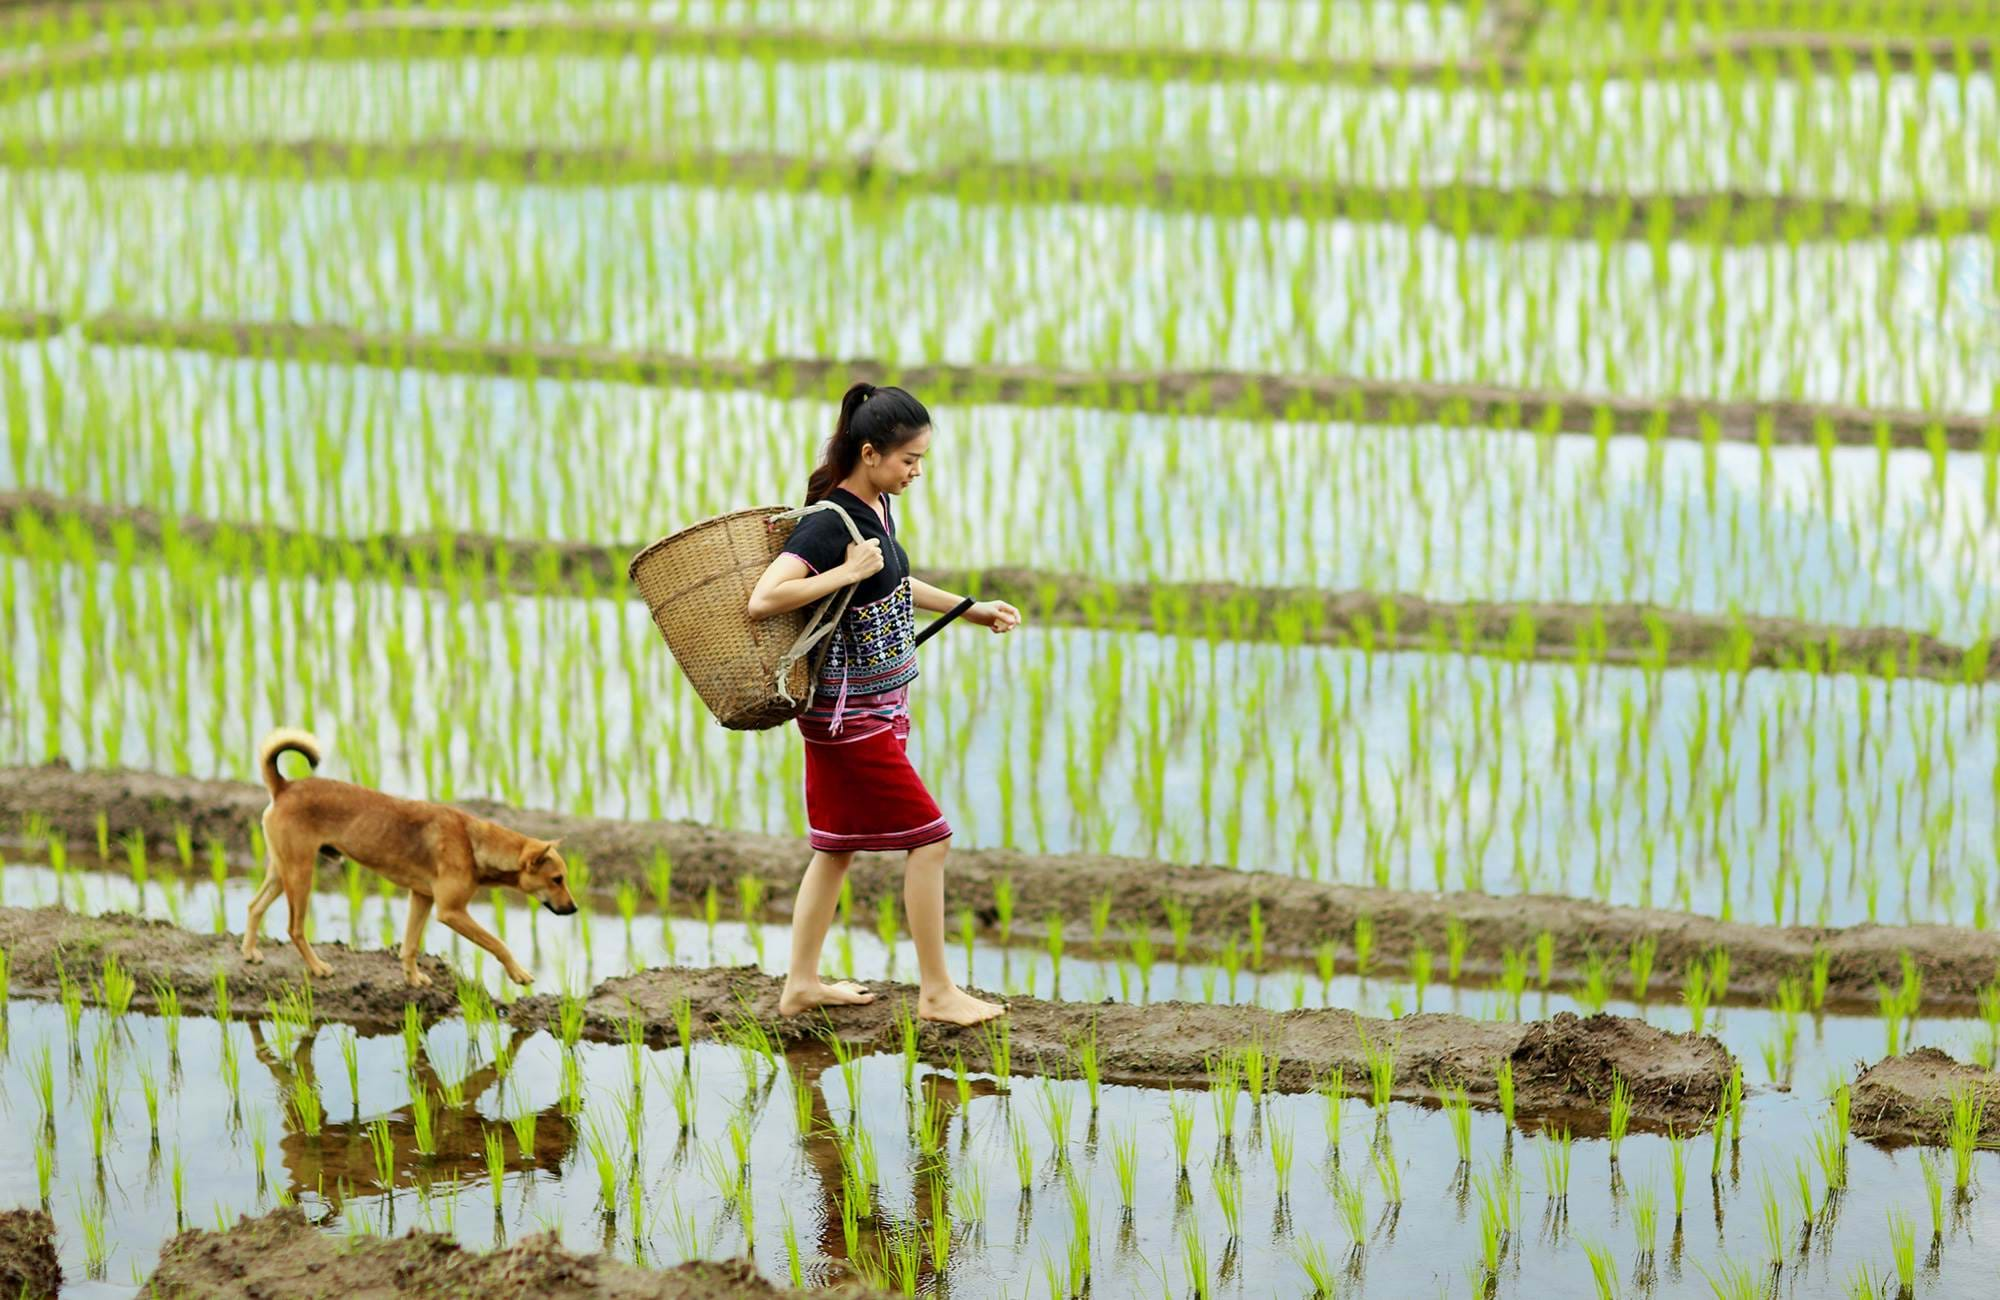 chiang-mai-thailand-rice-field-girl-and-dog